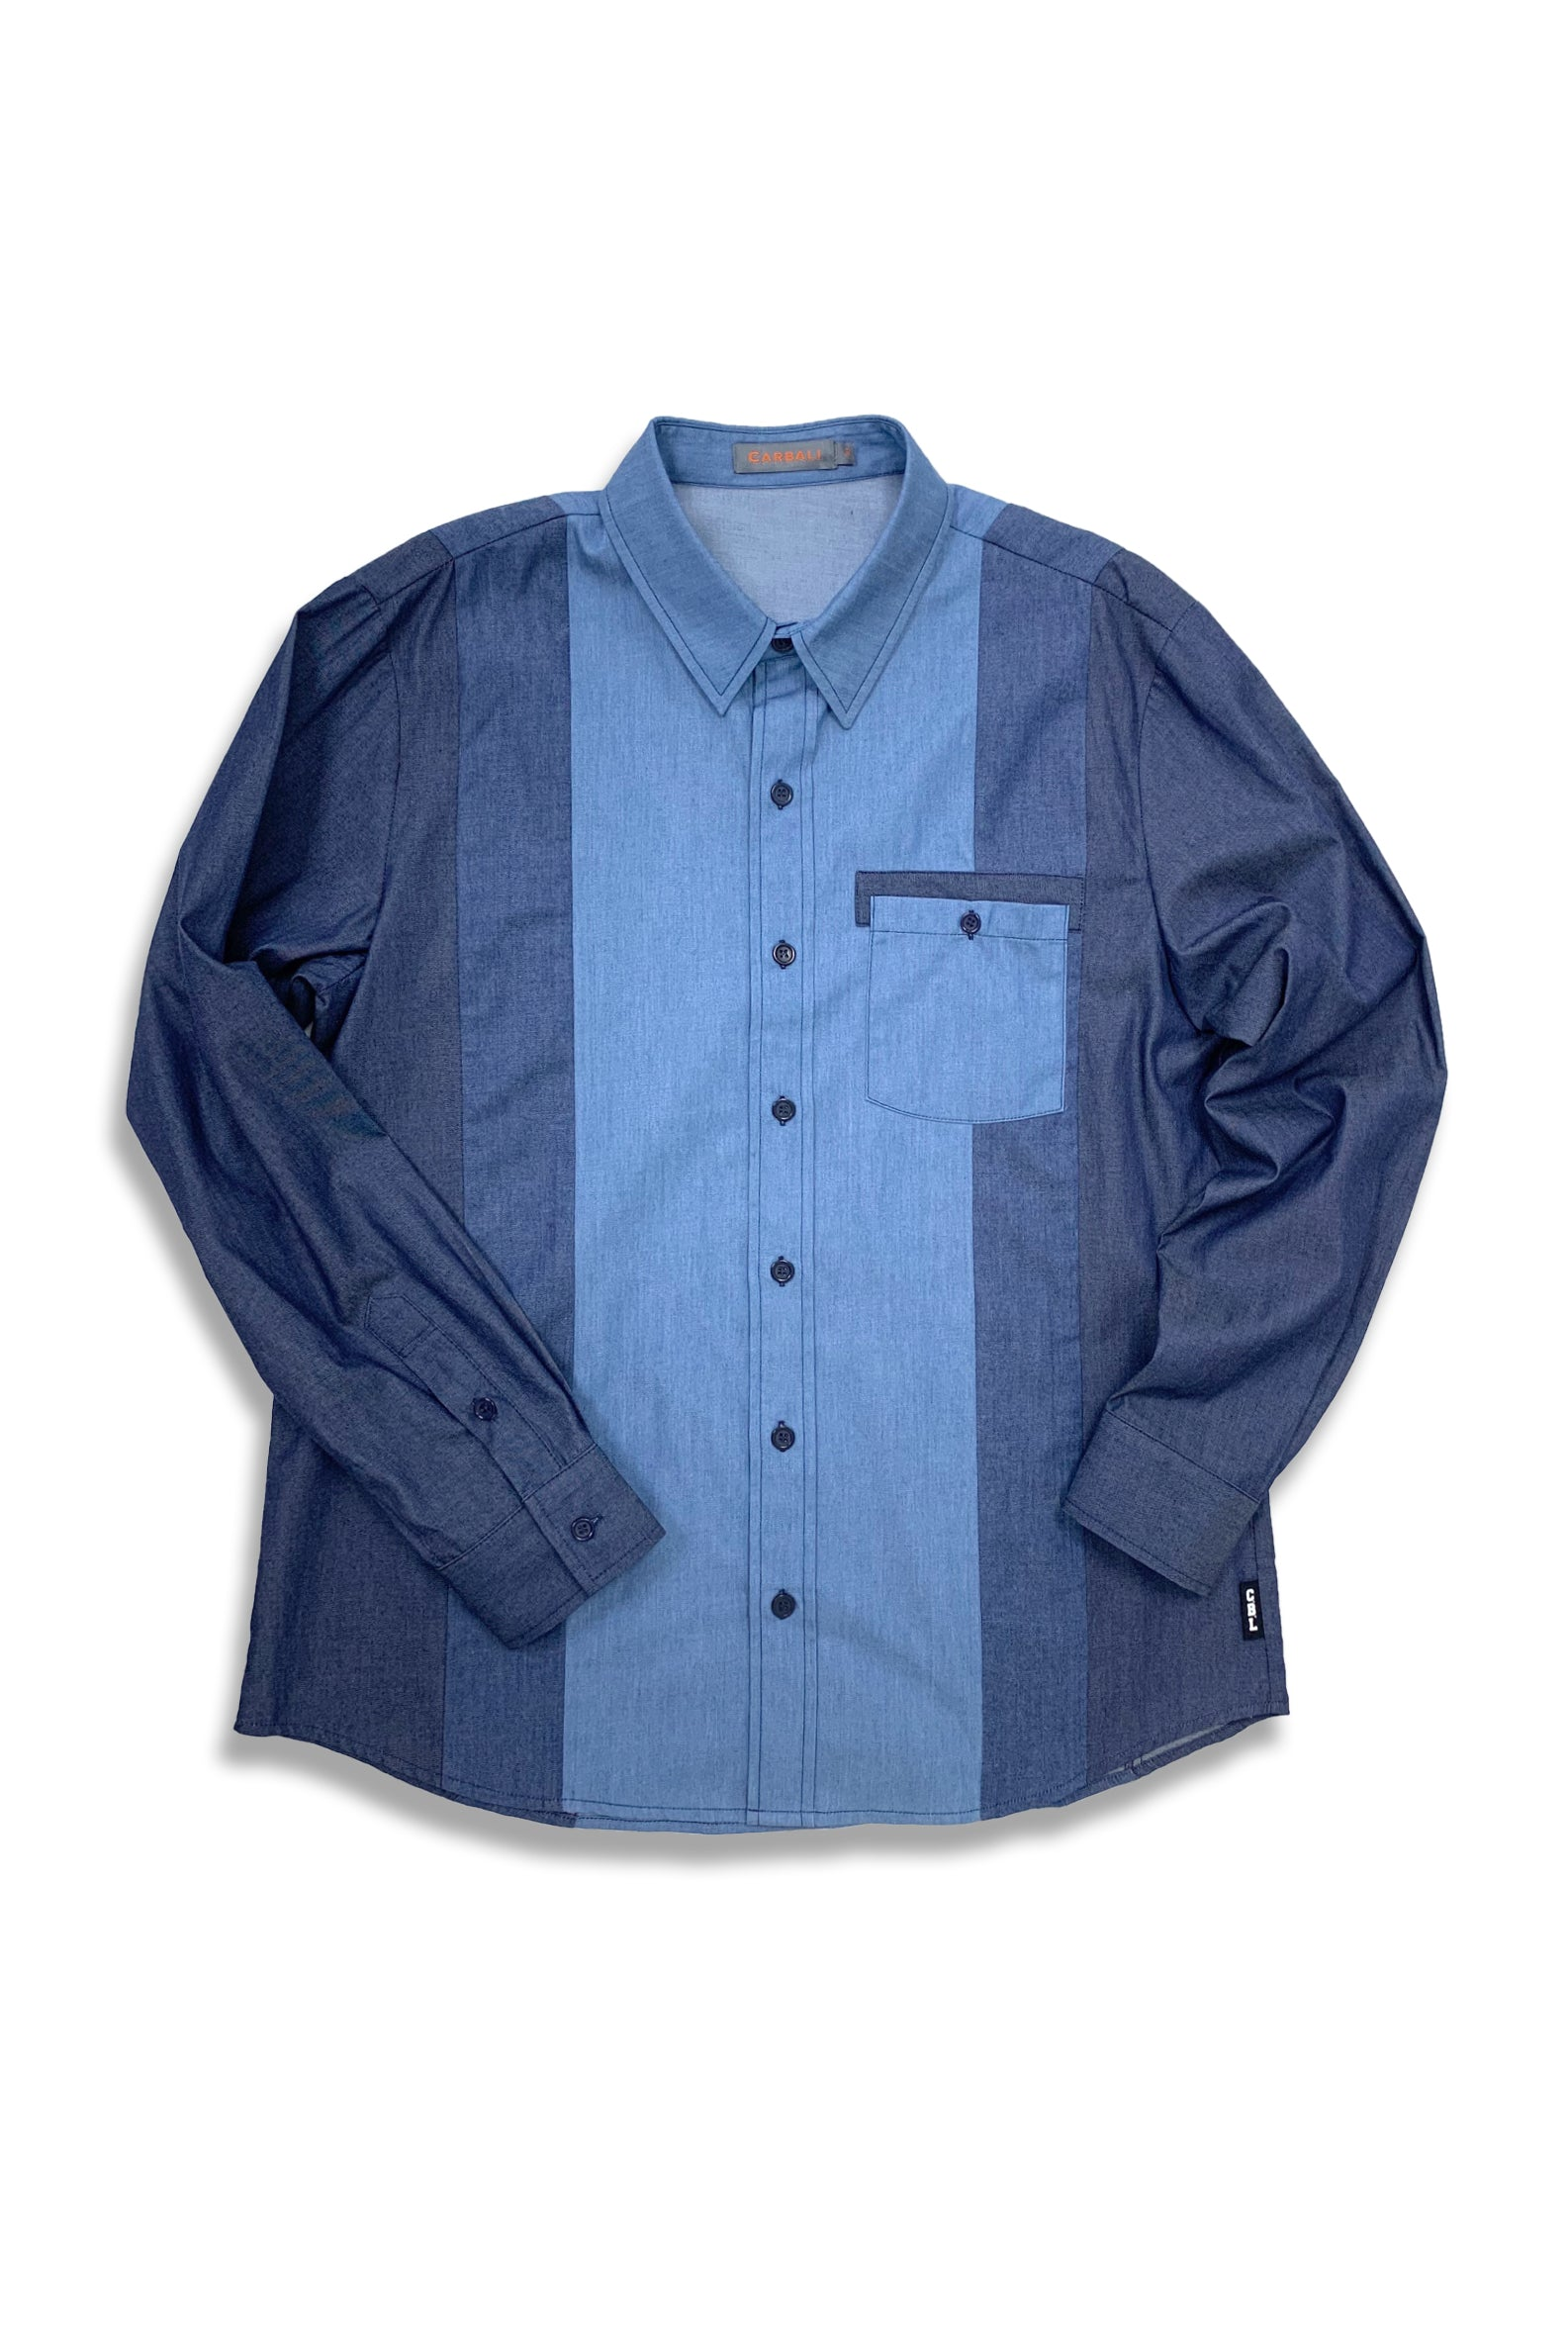 Carbali Demin Color Block Shirt